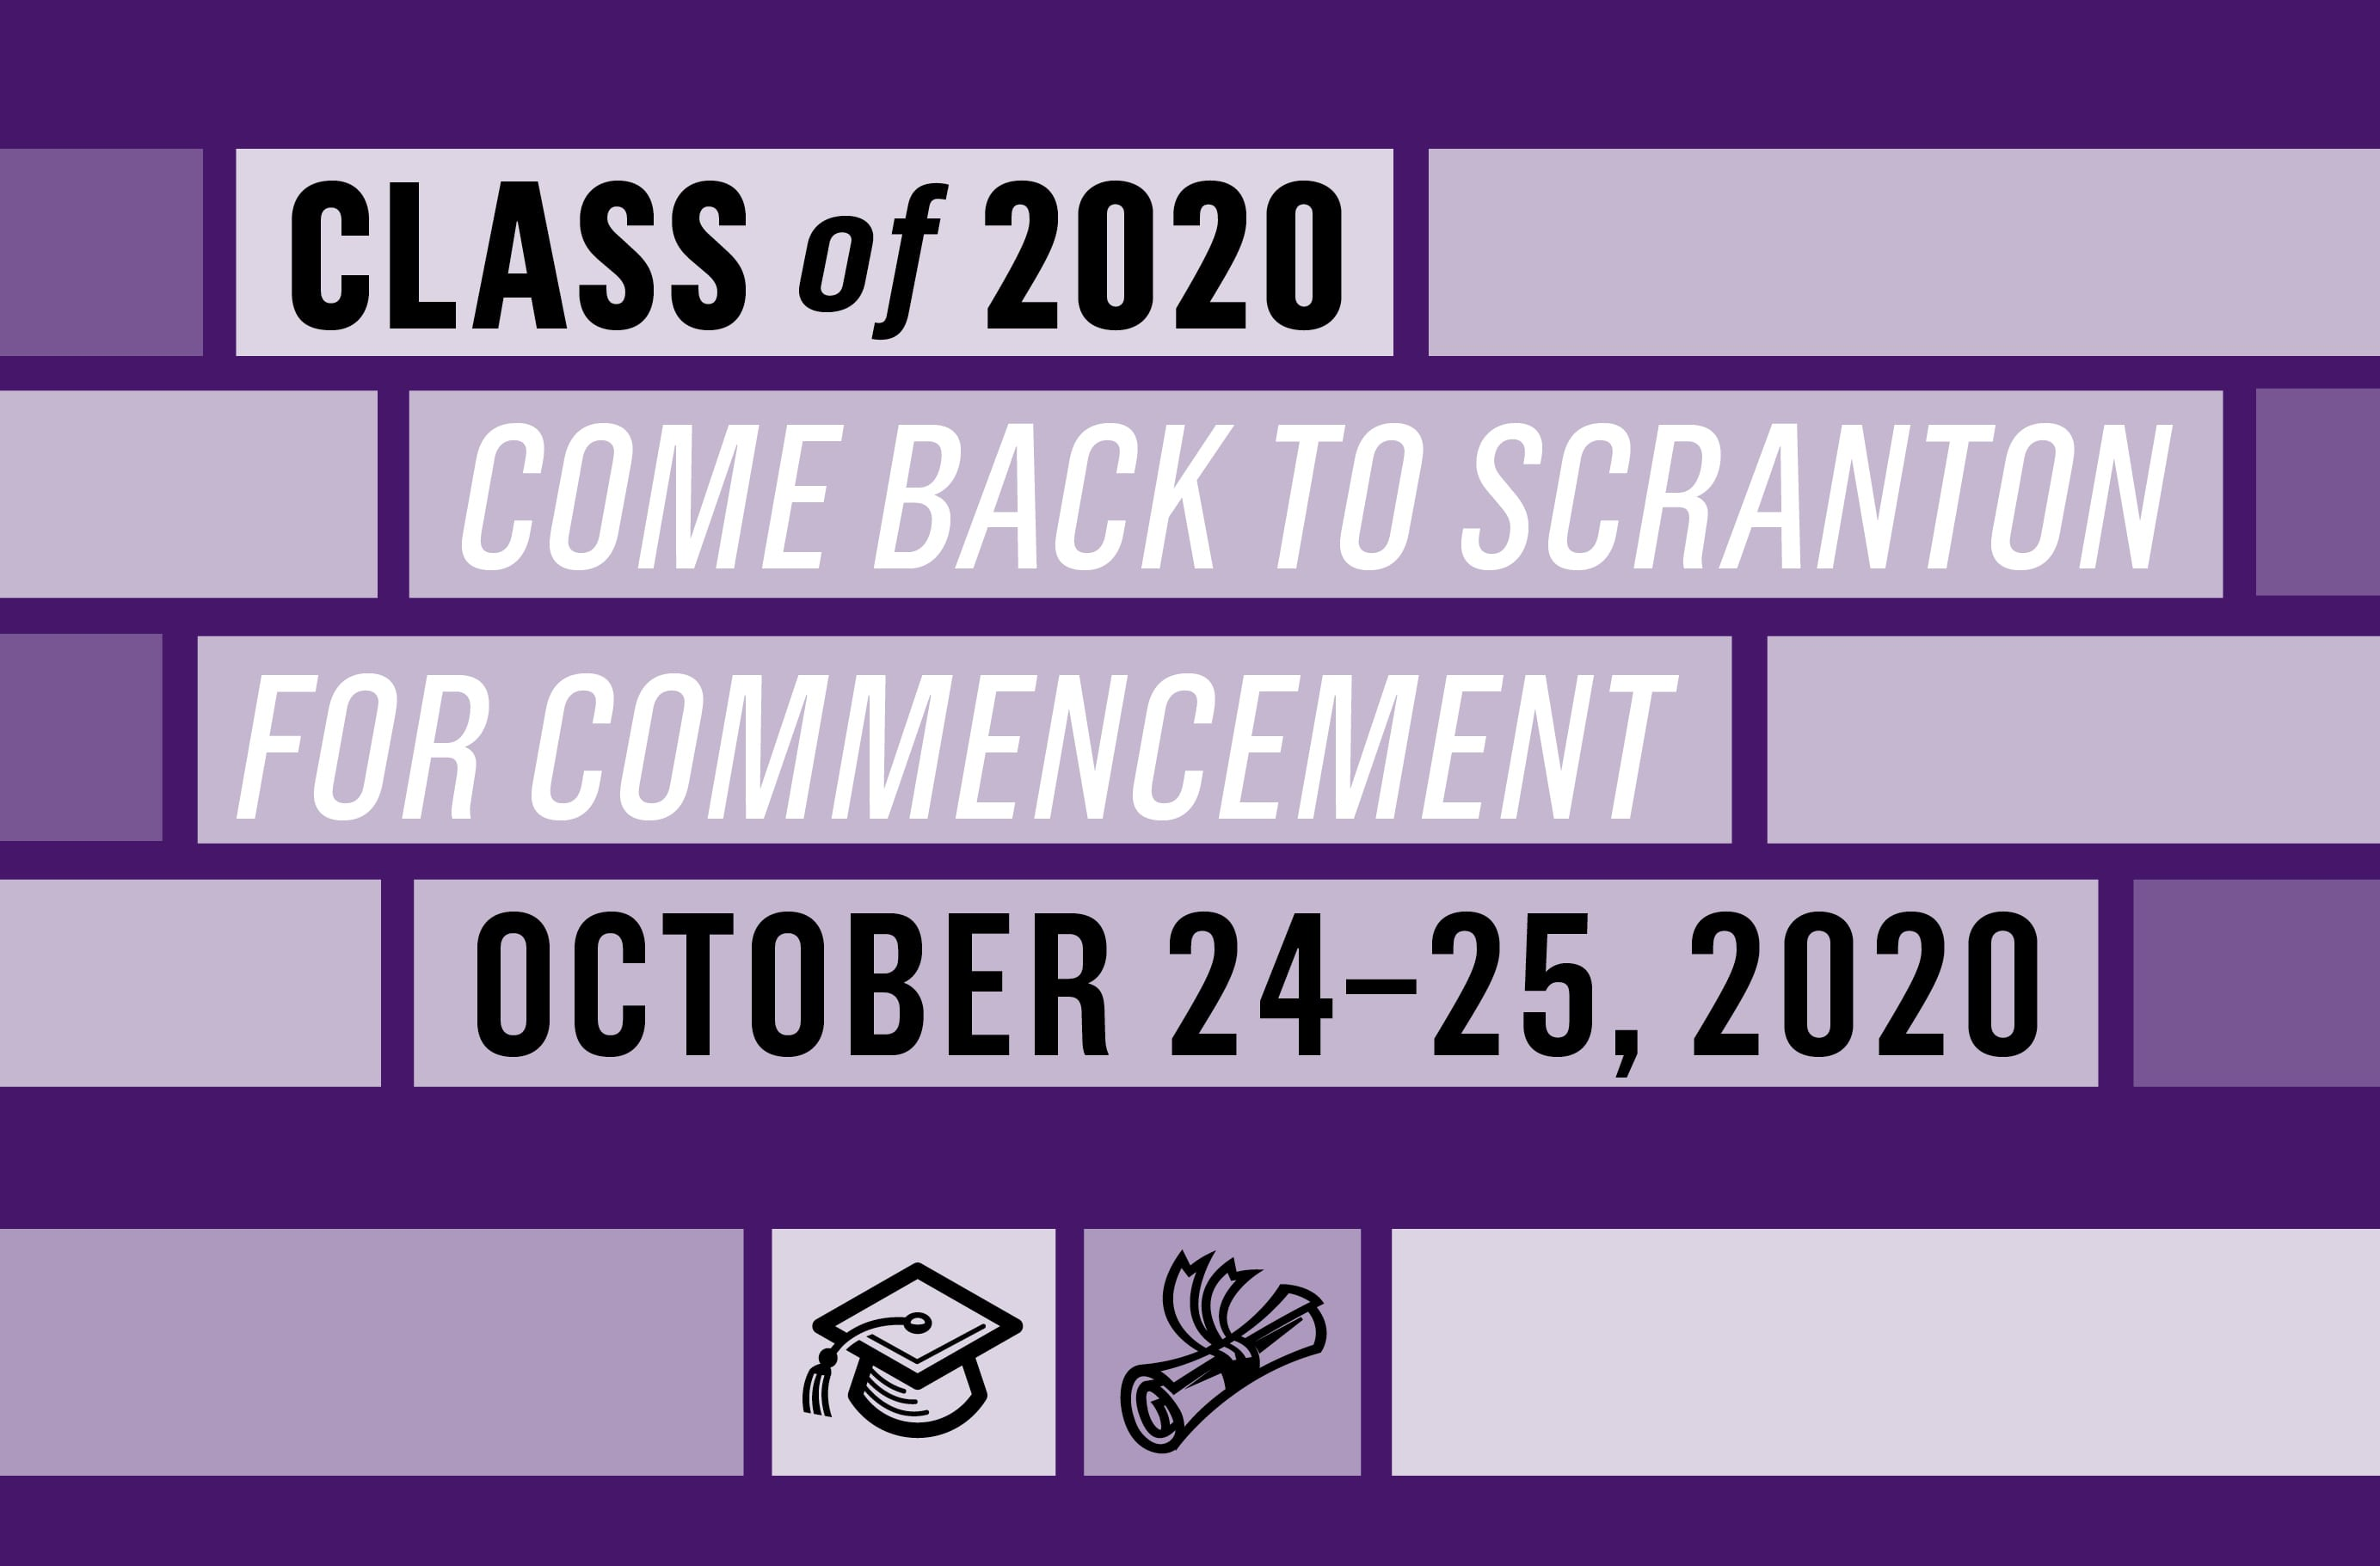 Come Back to Scranton for Commencement October 24-25, 2020